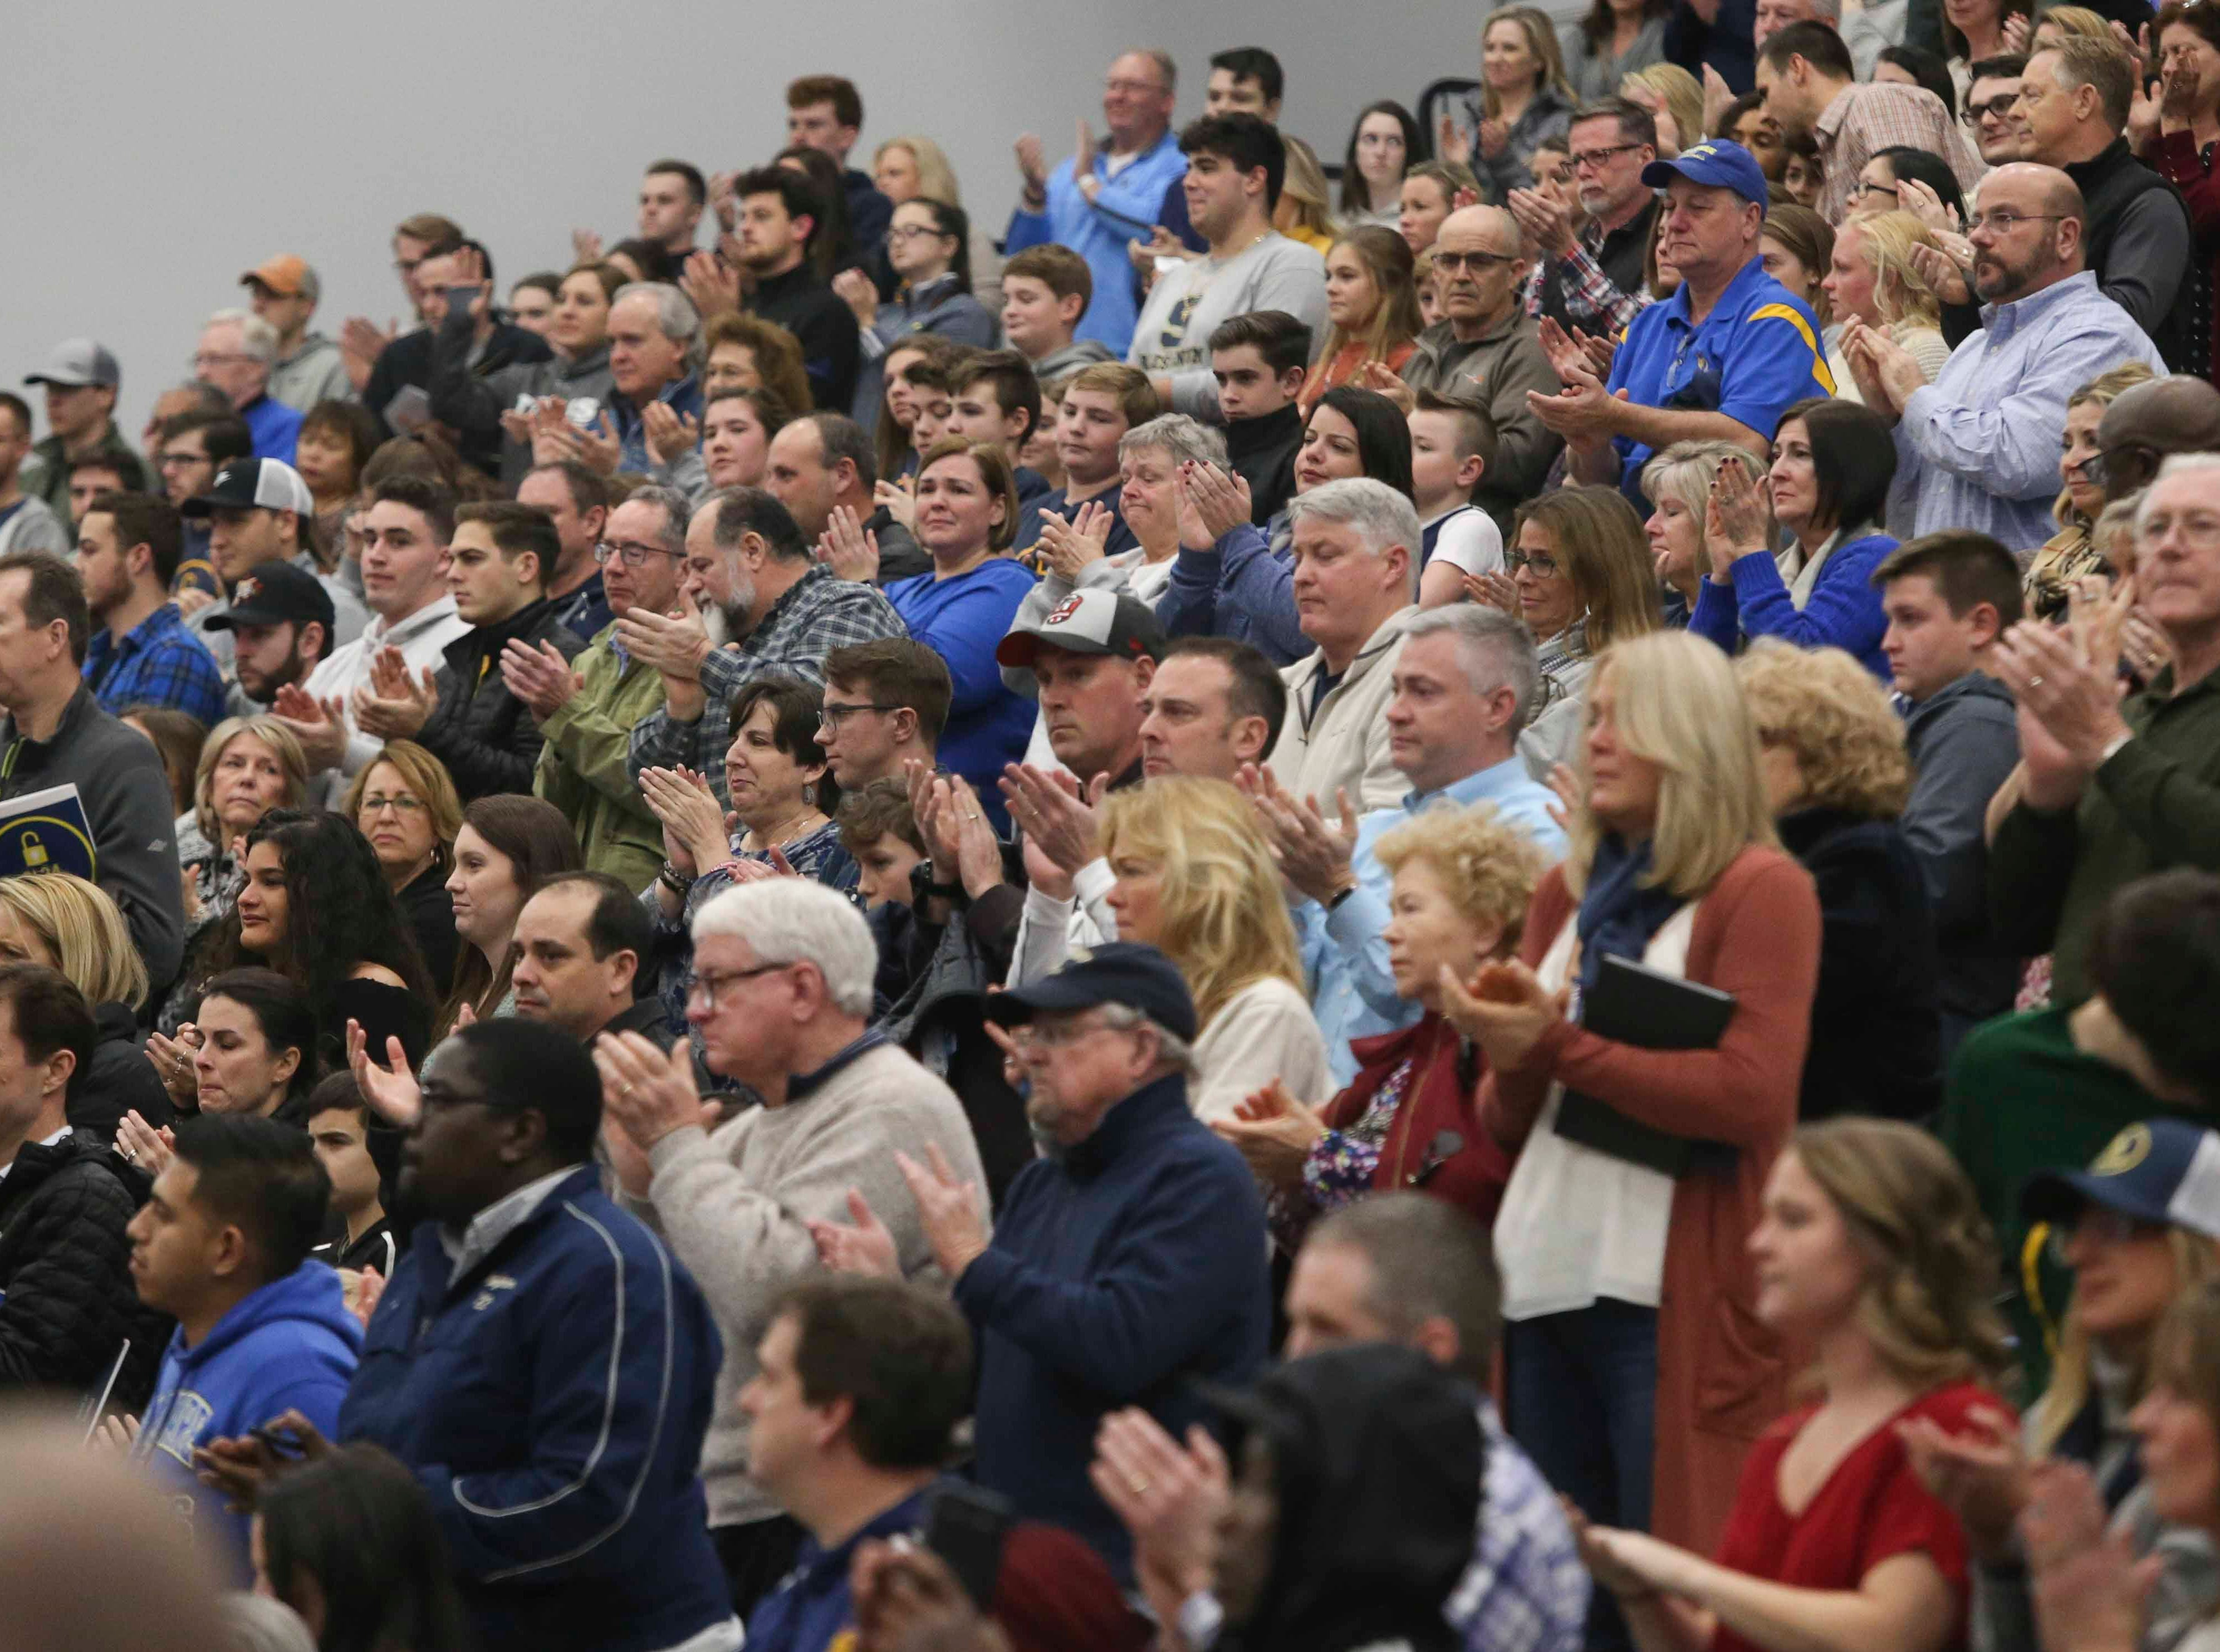 Attendees applaud the Locke family in ceremonies between games in the SL24 Memorial Basketball Classic at the 76ers Fieldhouse in Wilmington Friday.